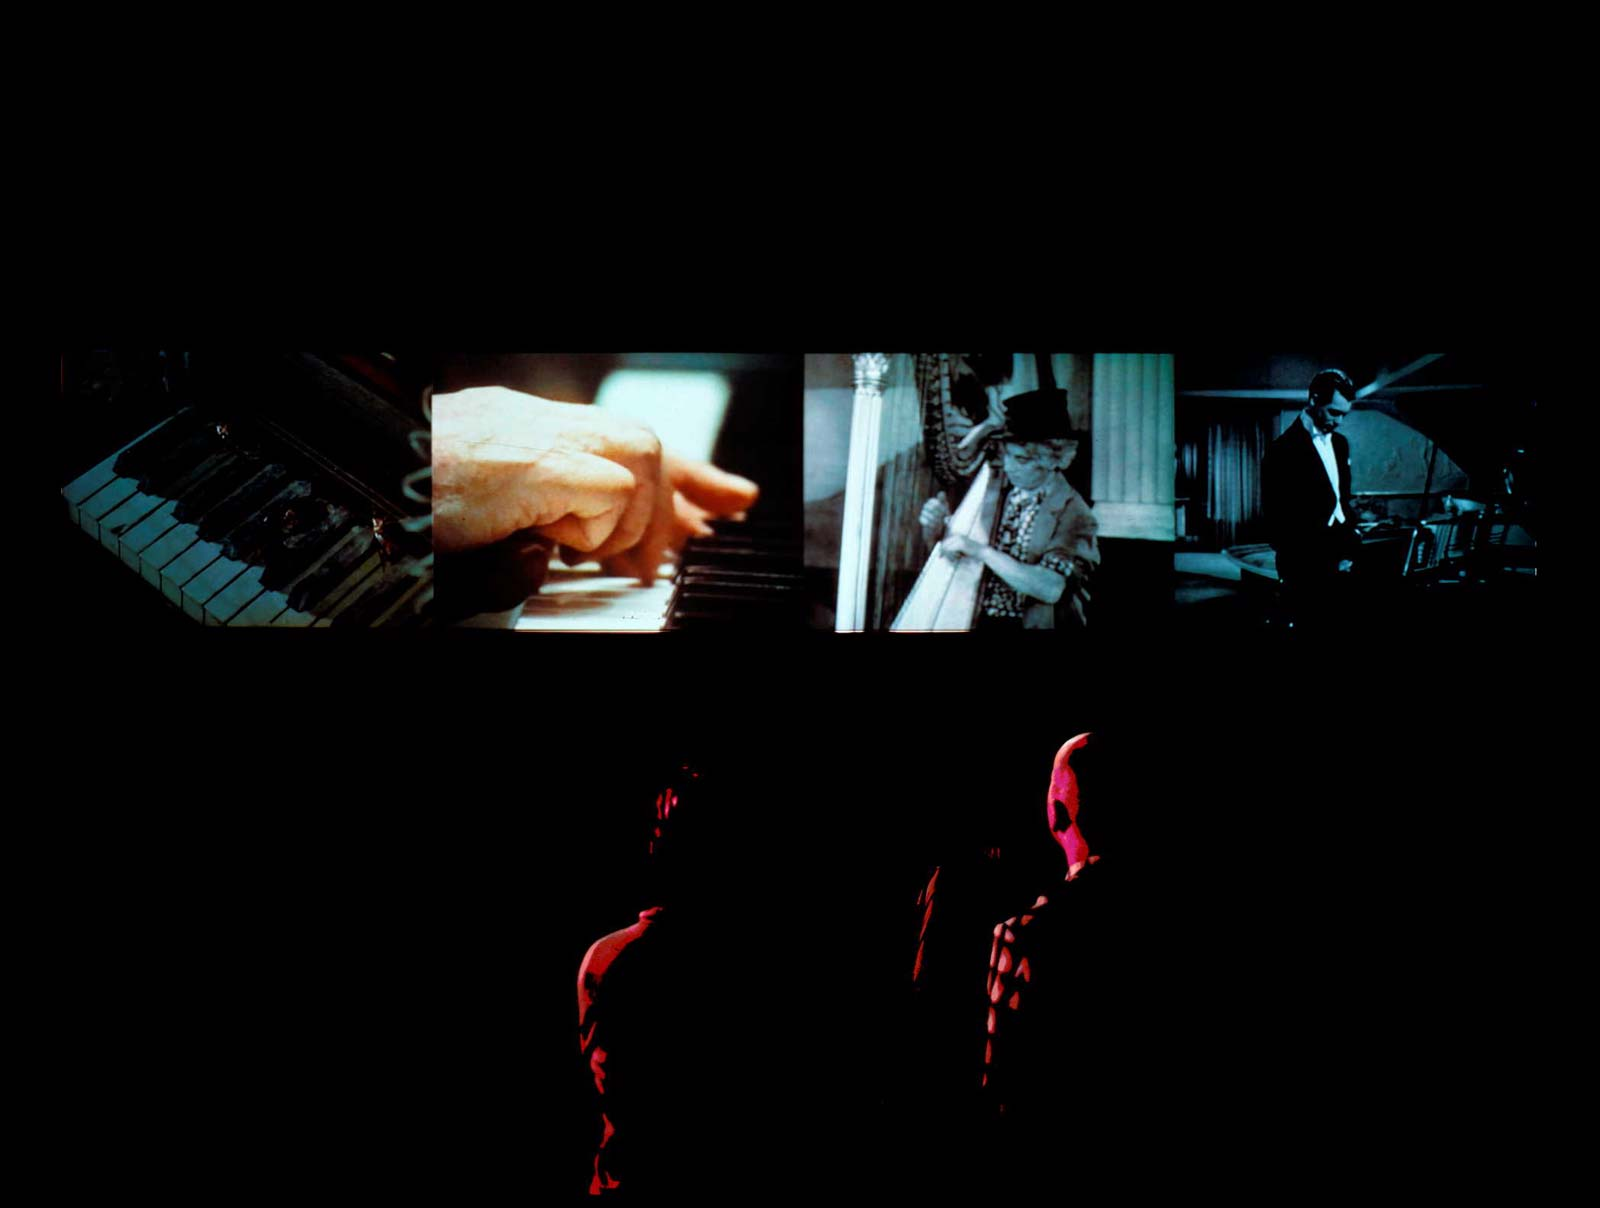 Figure 1. Christian Marclay, Video Quartet, 2002 (installation view), SFMOMA Collection.